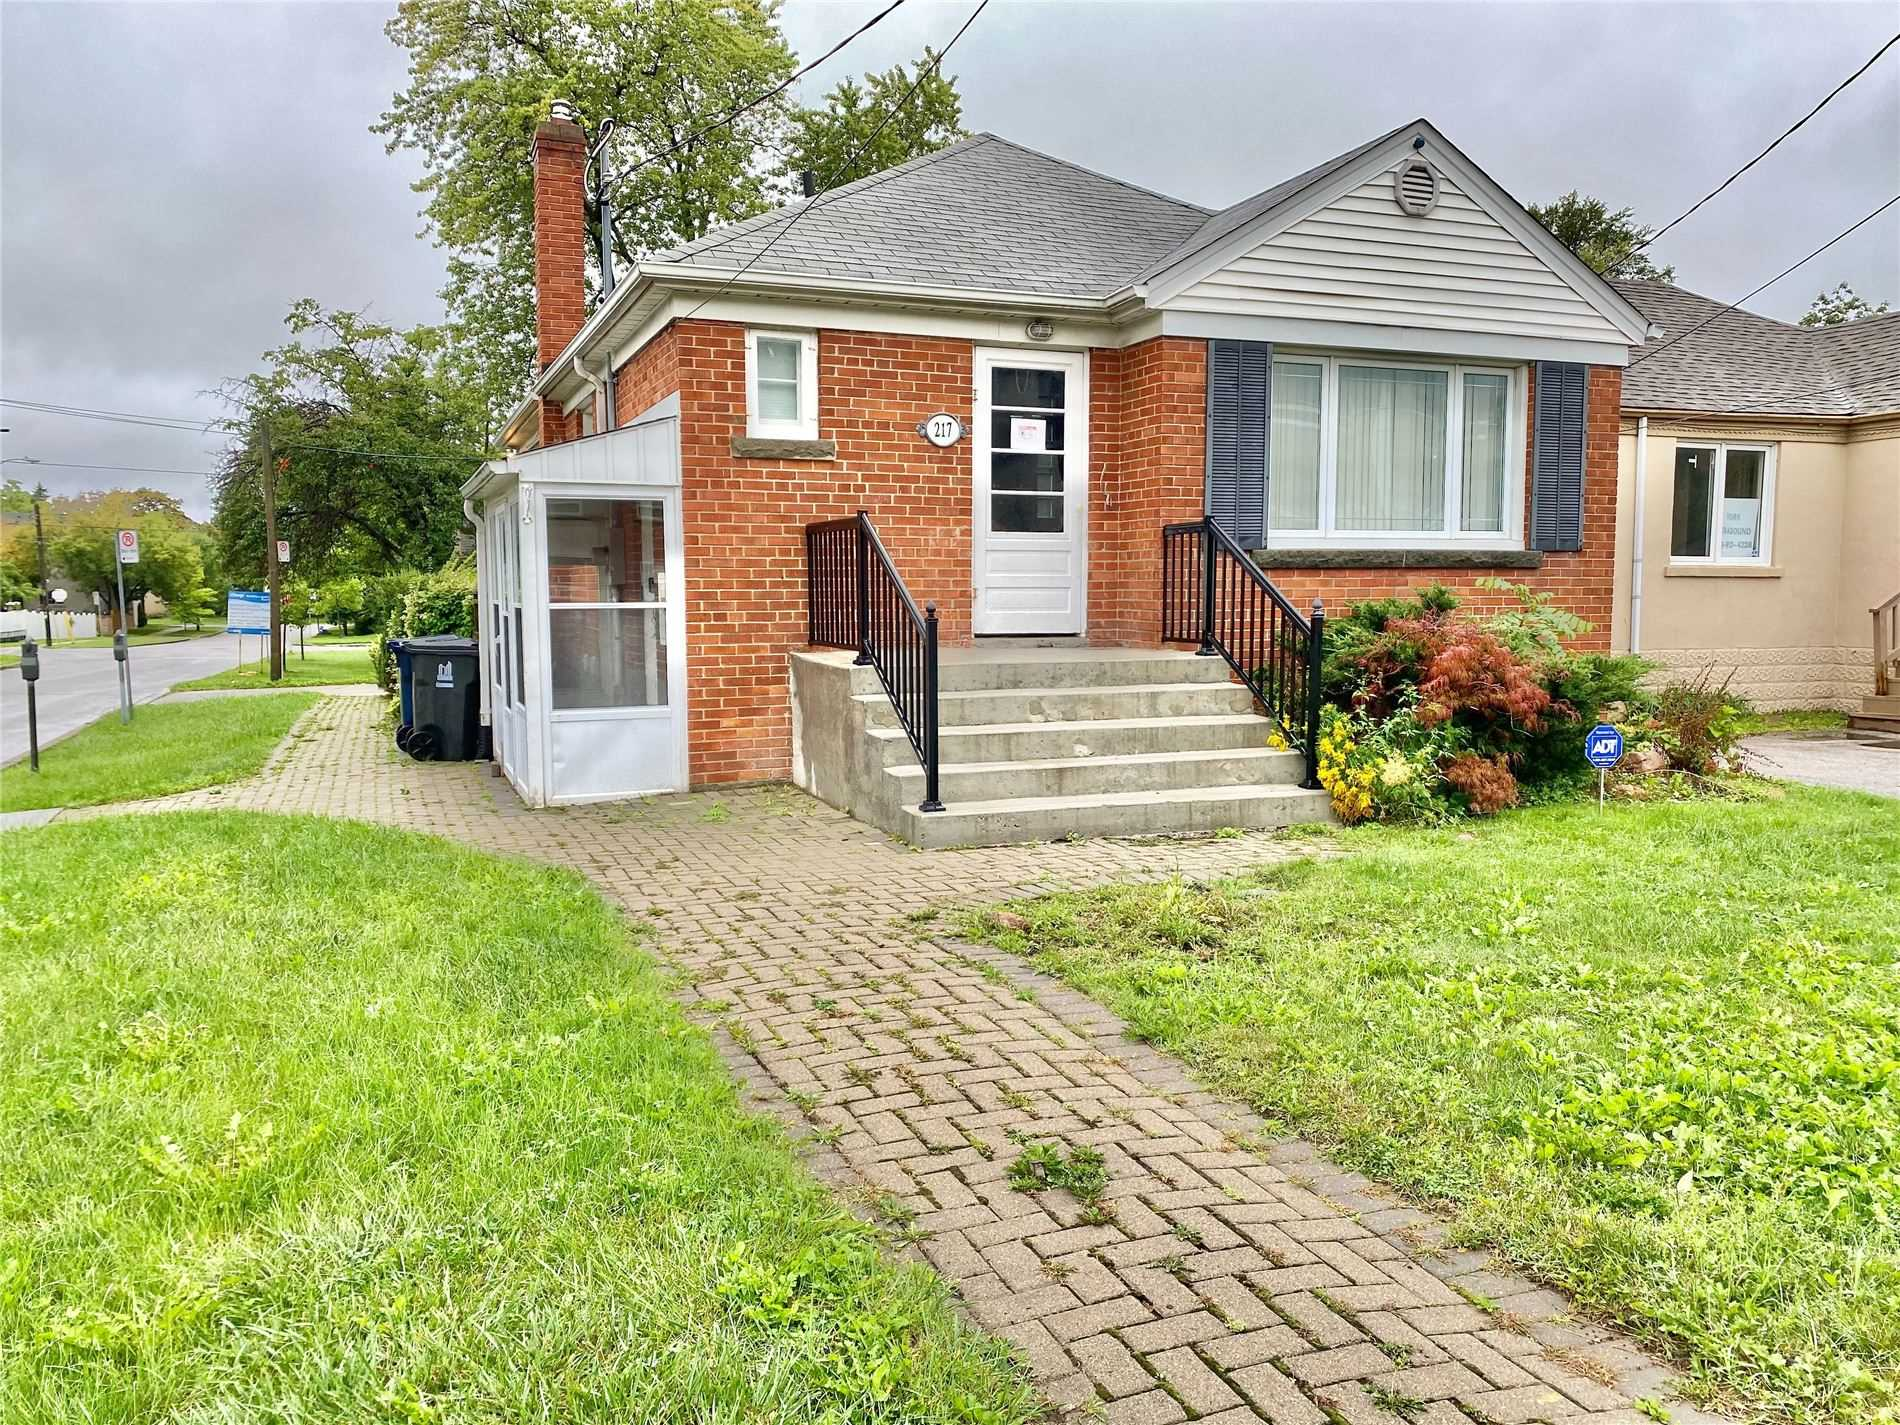 Detached house For Lease In Toronto - 217 Sheppard Ave, Toronto, Ontario, Canada M2N1N2 , 3 Bedrooms Bedrooms, ,2 BathroomsBathrooms,Detached,For Lease,Sheppard